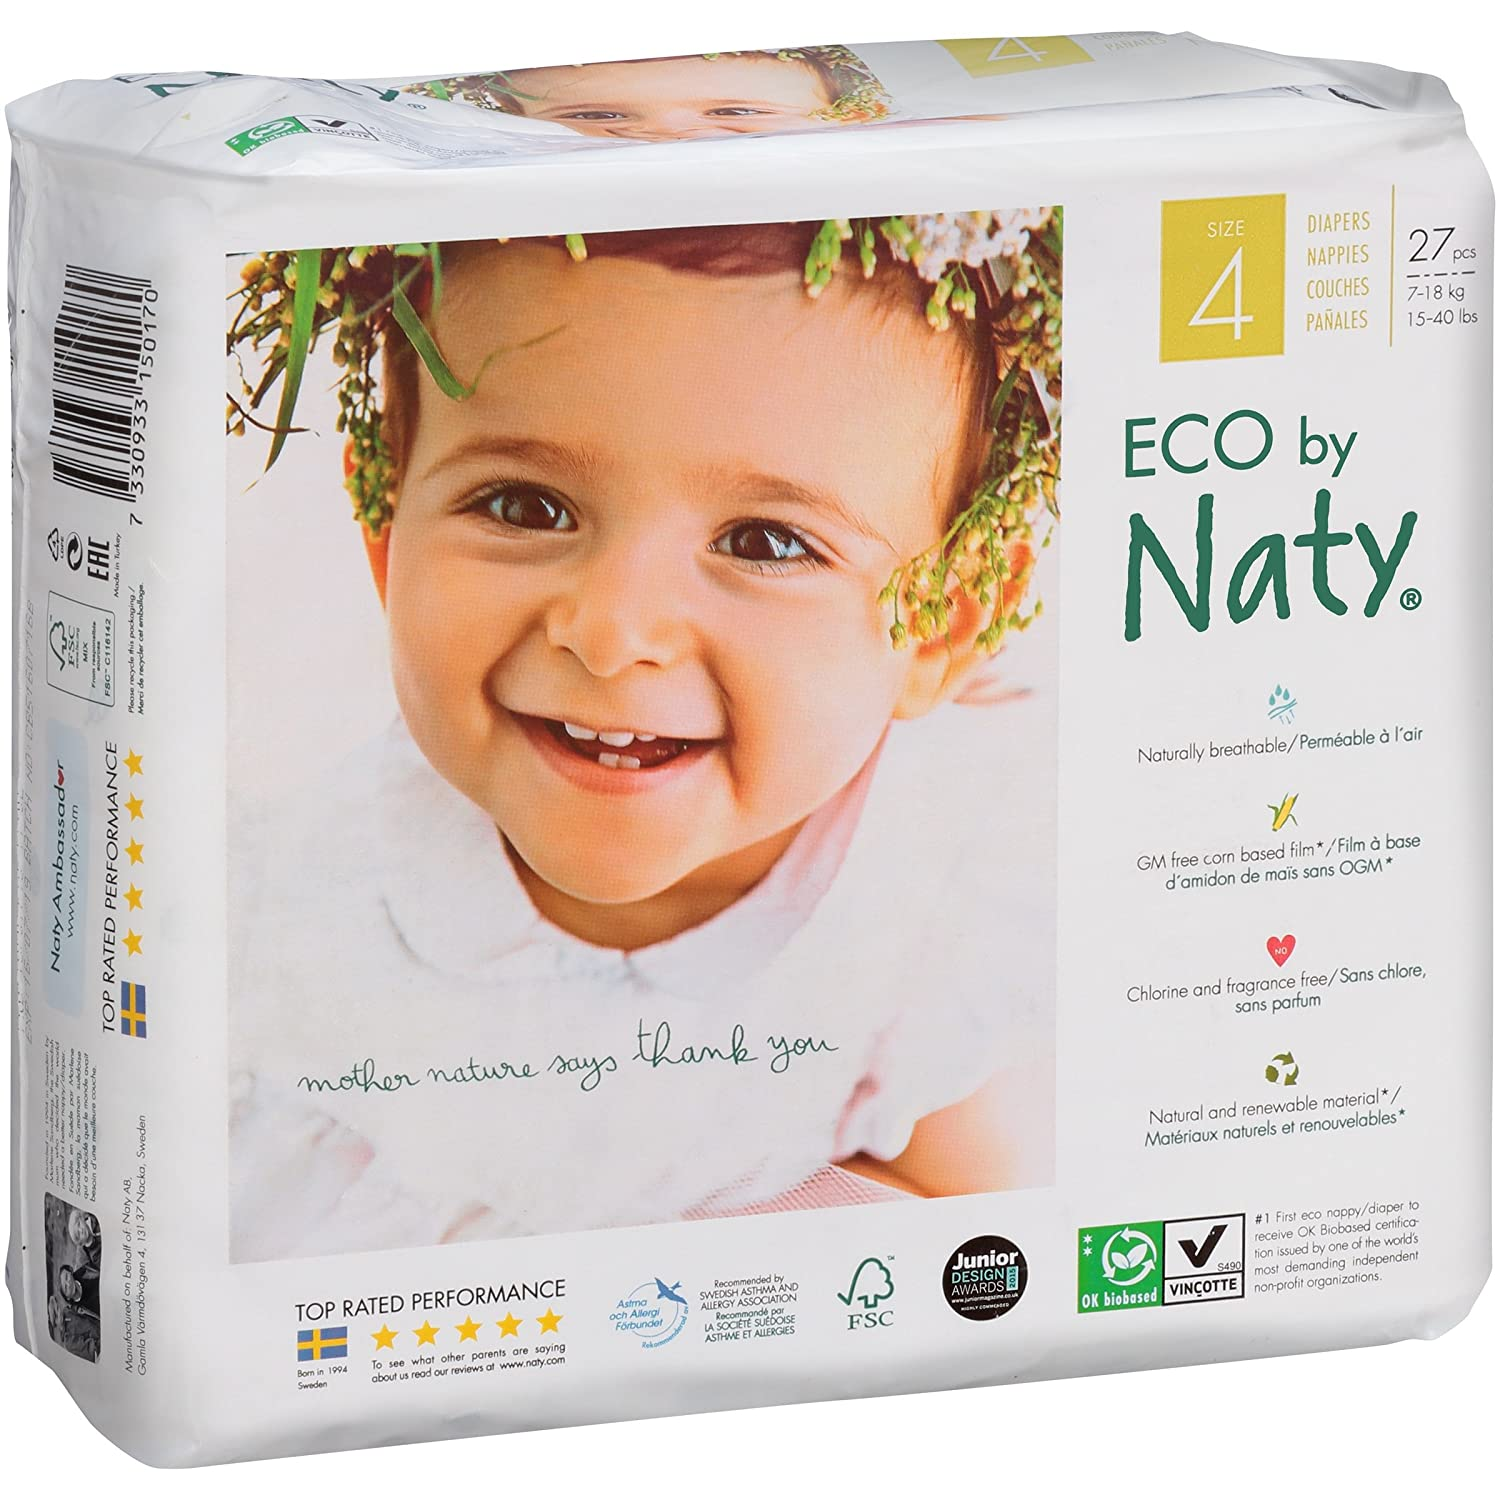 Amazon.com: Branded Naty, ECO By Naty Diapers, Size 4, 27 Diapers , Weight 37lbs - Branded Diapers with fast delivery (Soft and Comfortable for Babies): ...